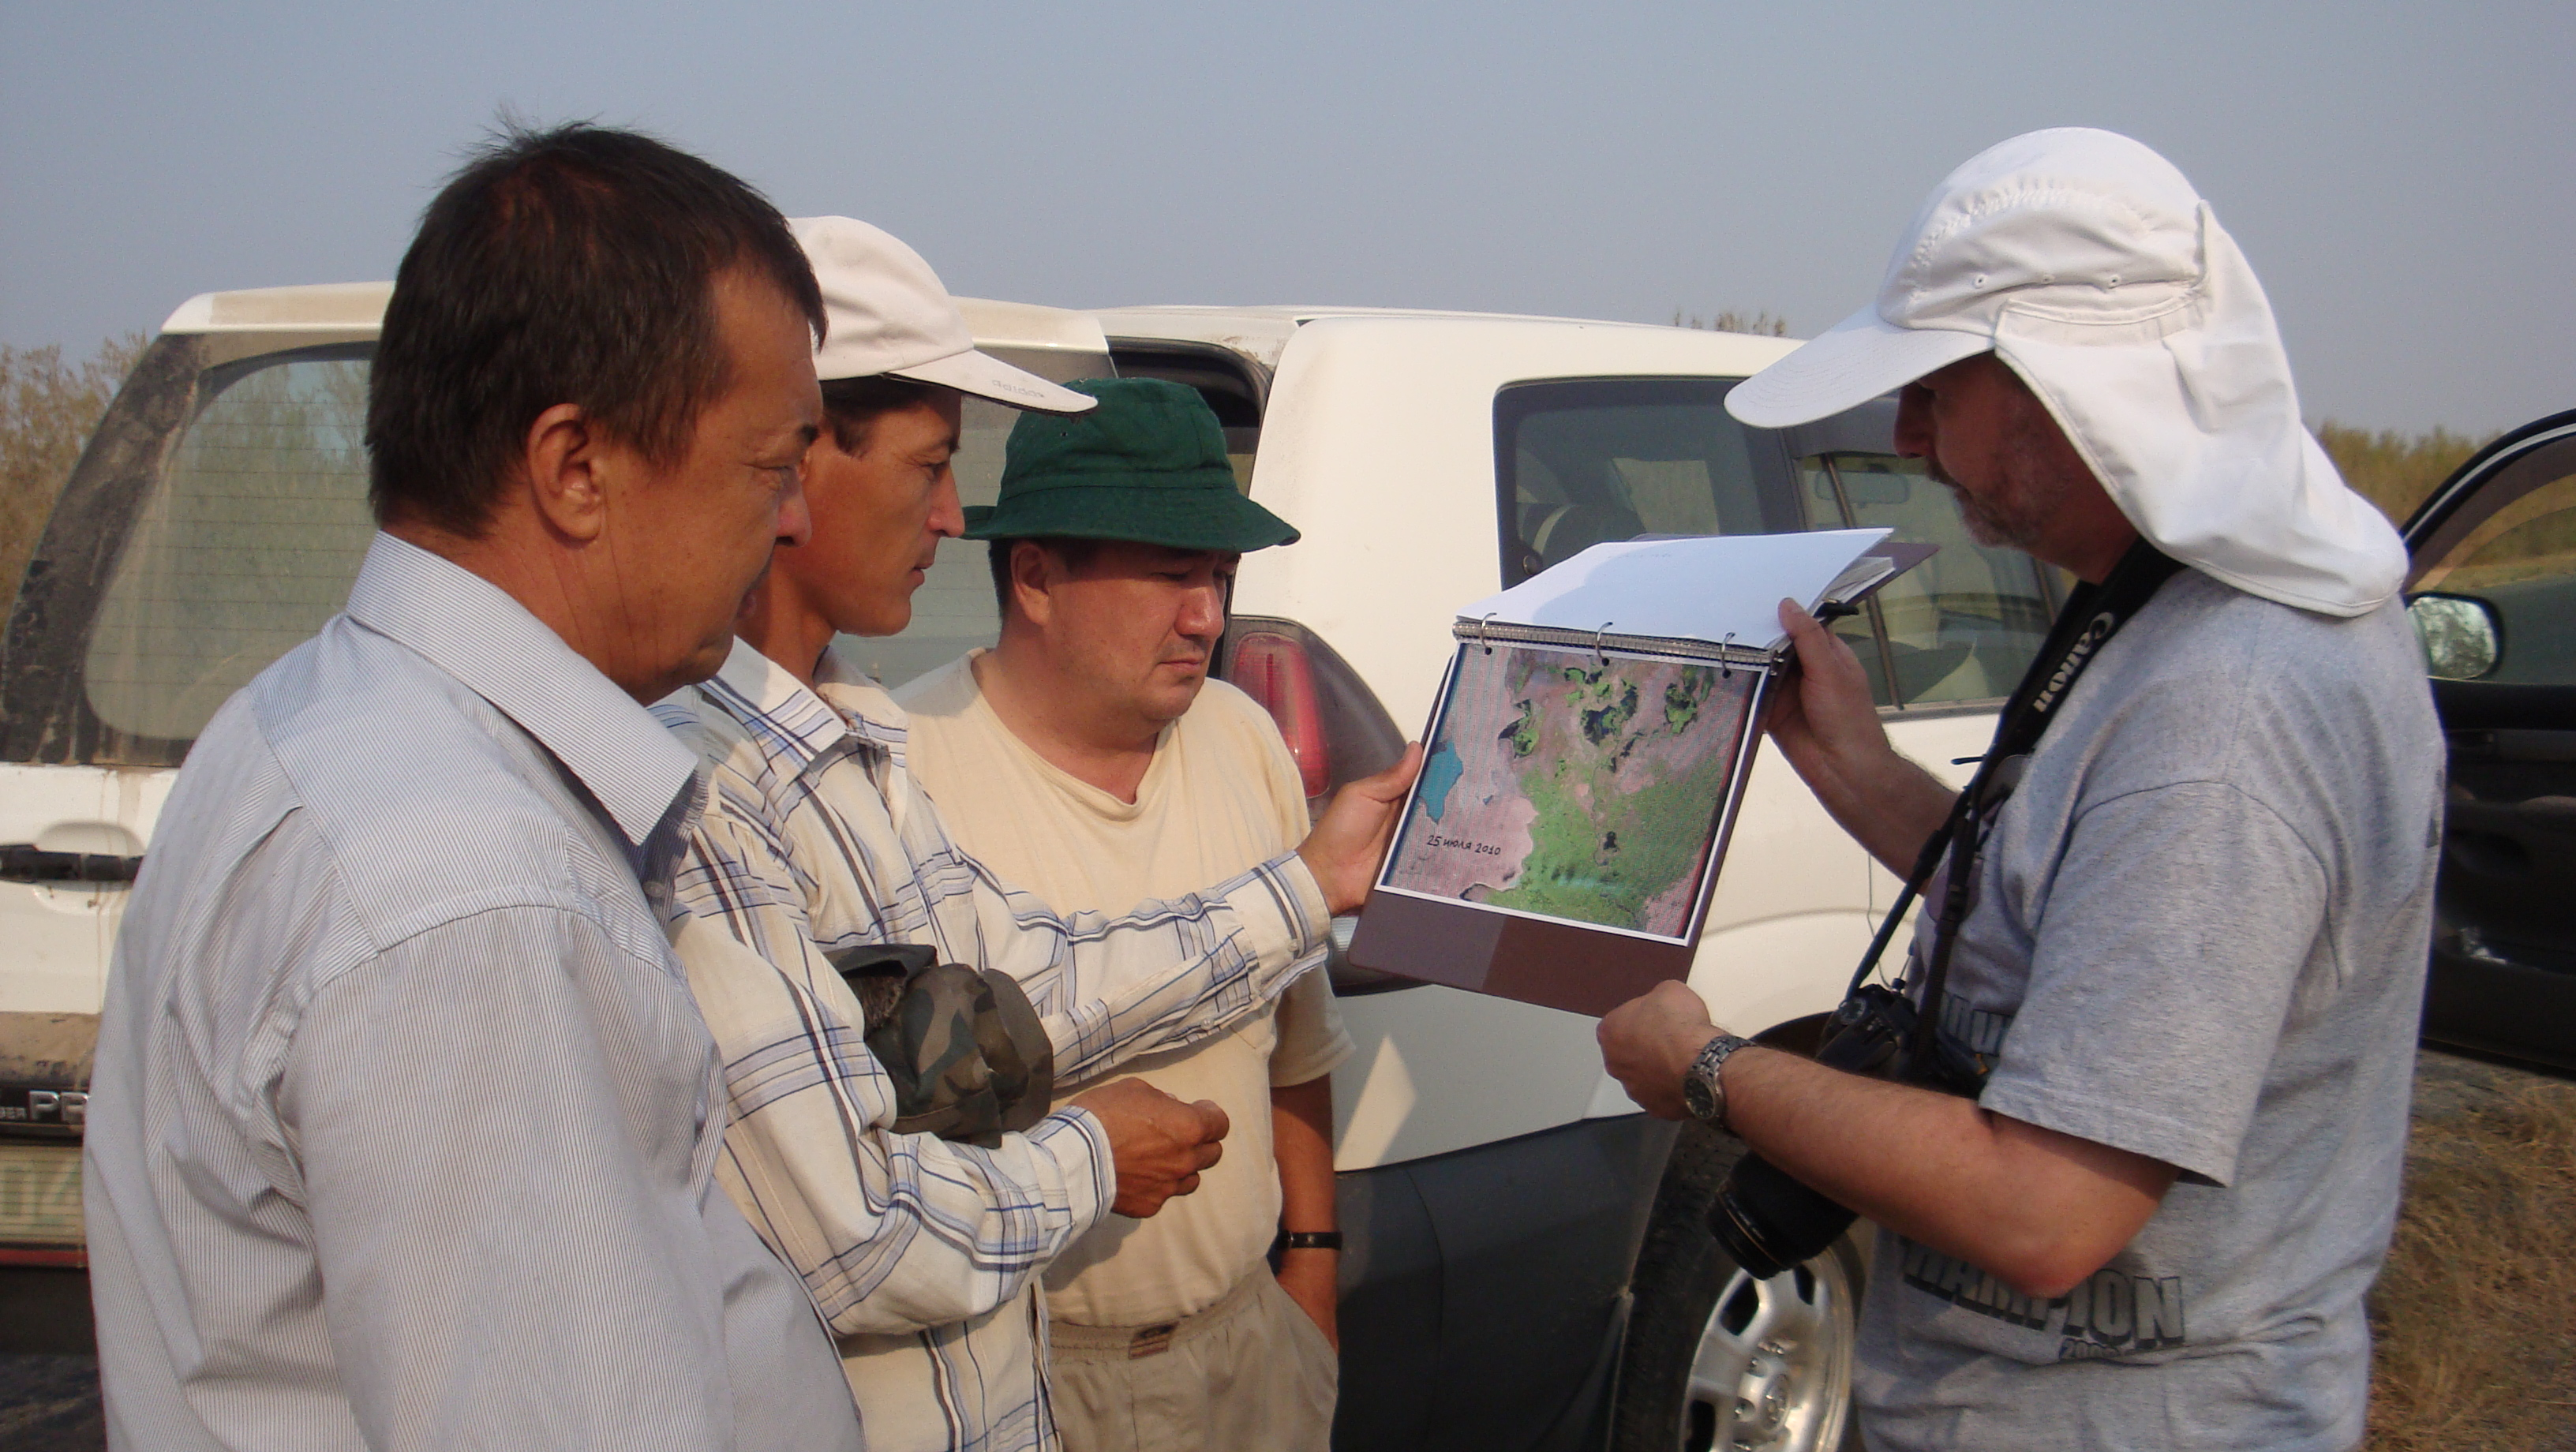 Alex Latchininsky wears a protective hat while do field work with Uzbek locust experts near the Aral Sea.